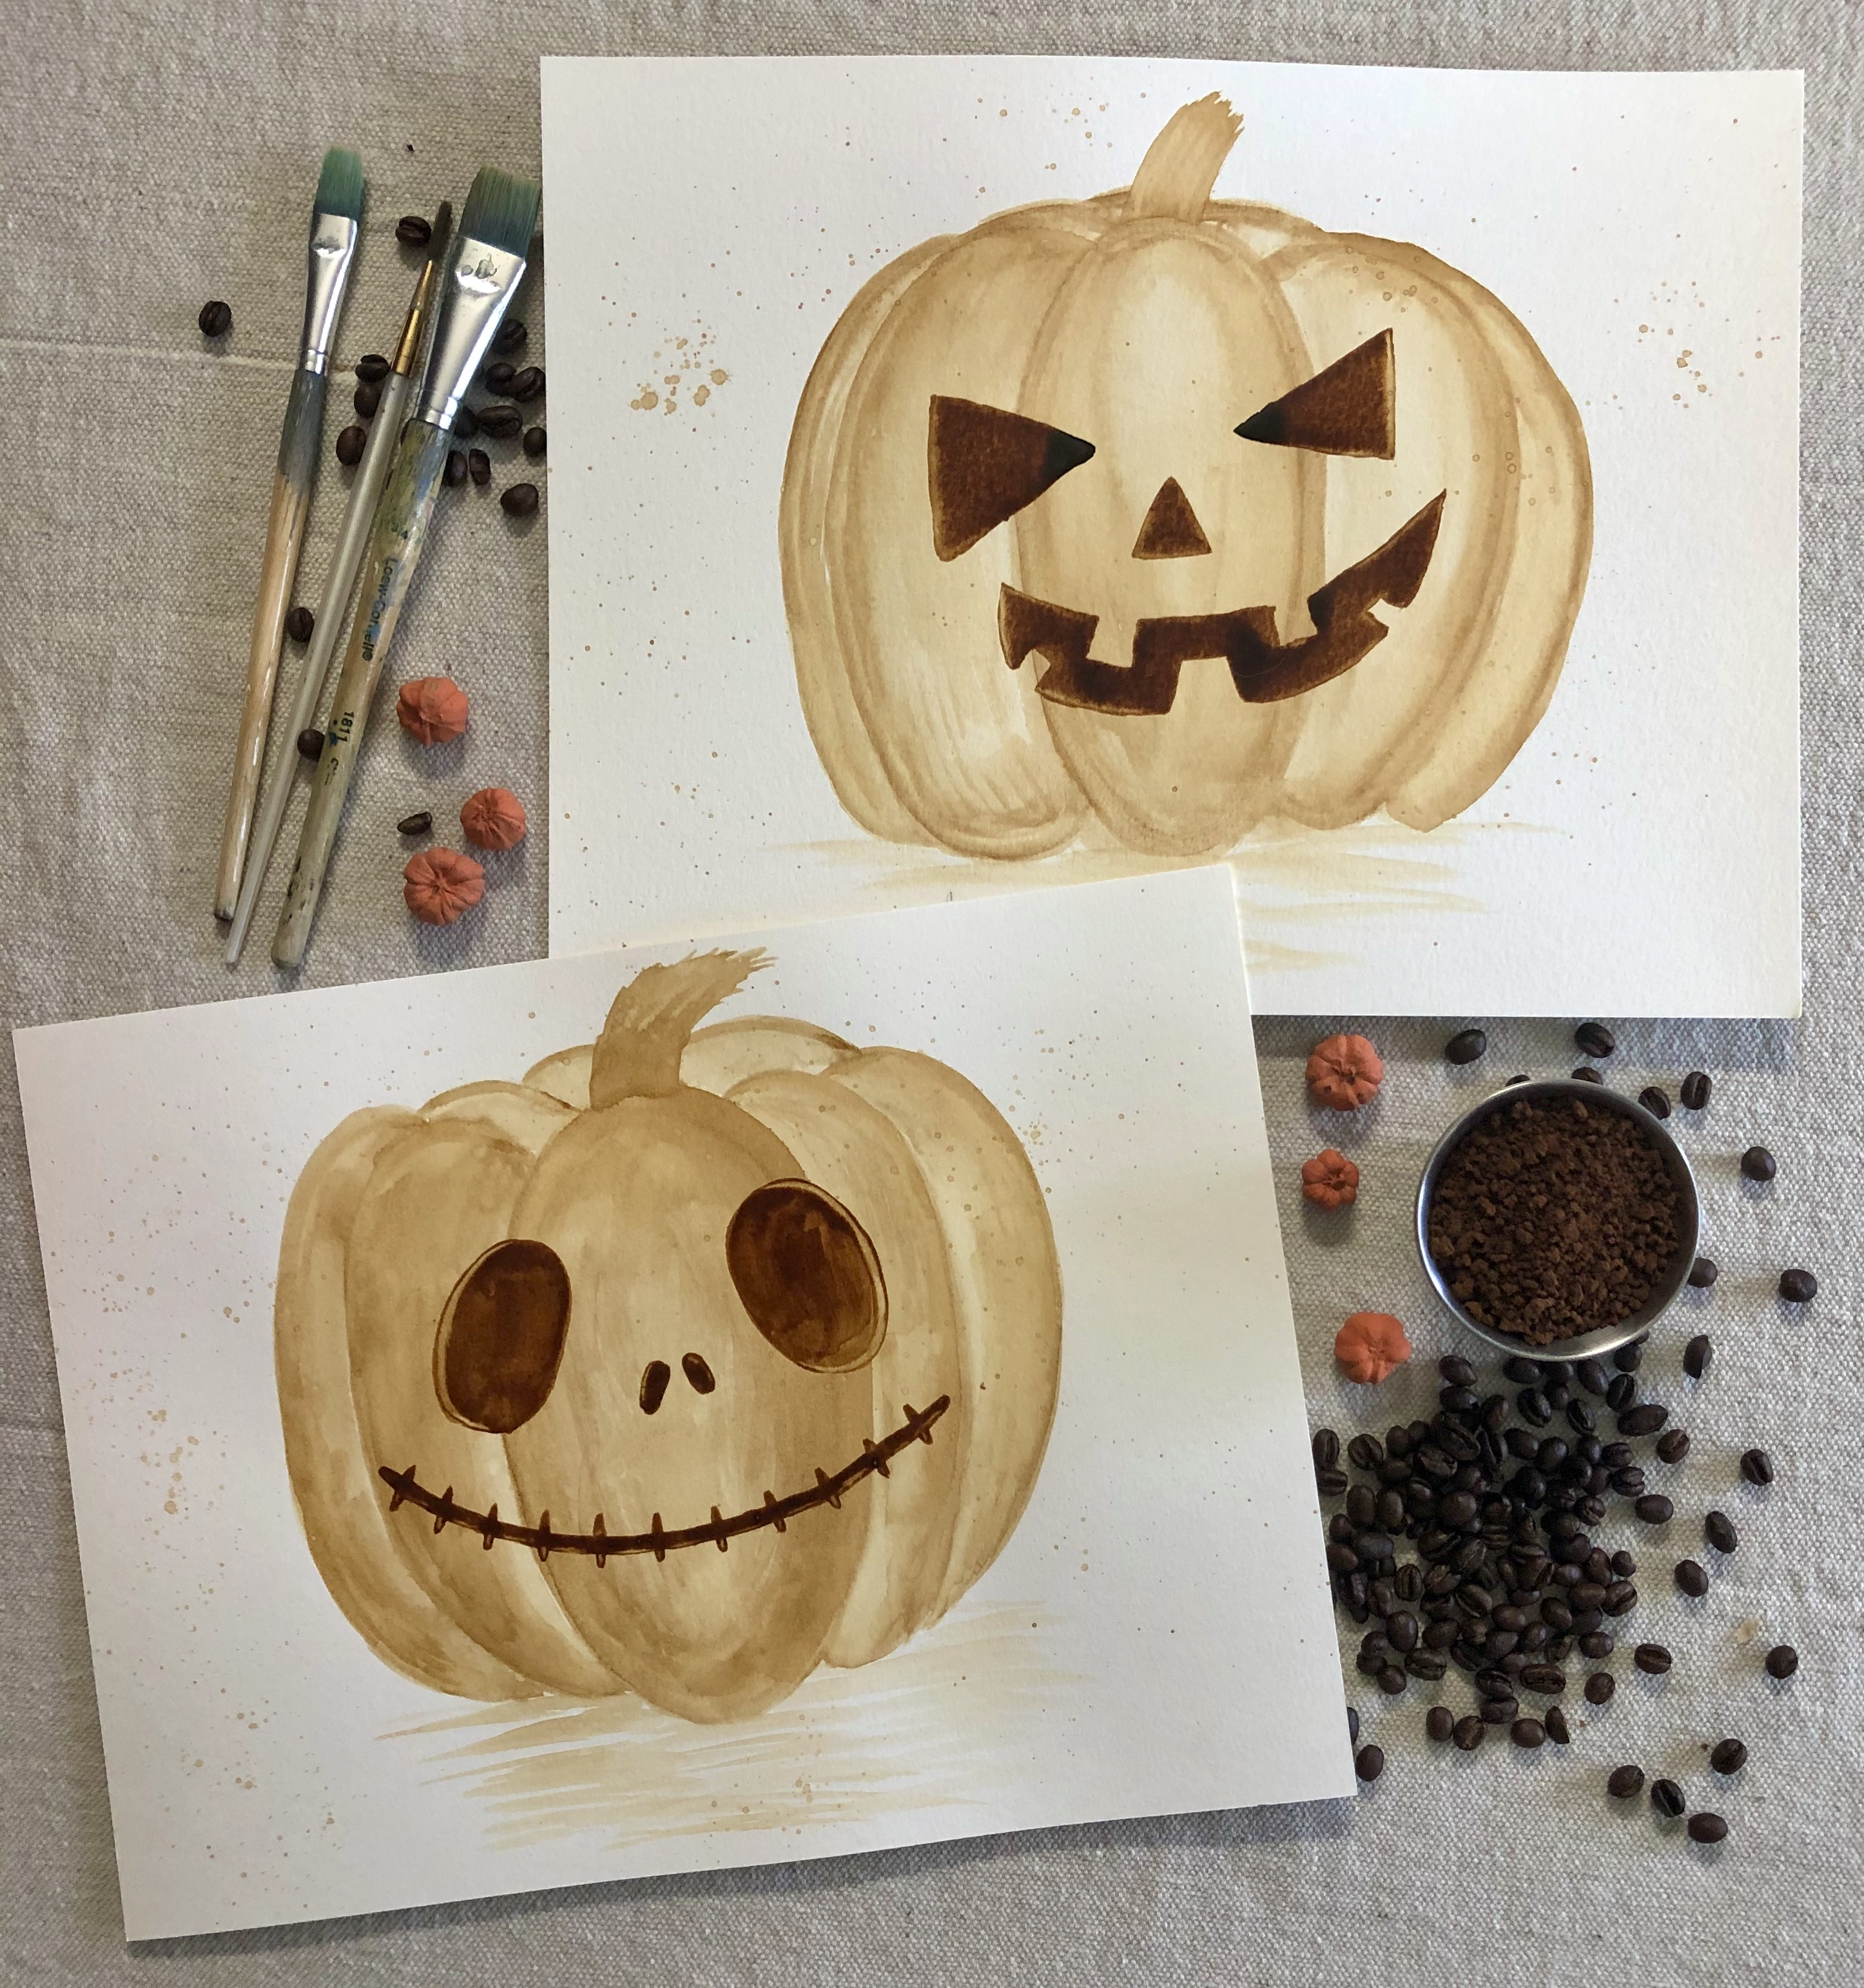 A Paint Your Own Instant Coffee JackOLantern experience project by Yaymaker